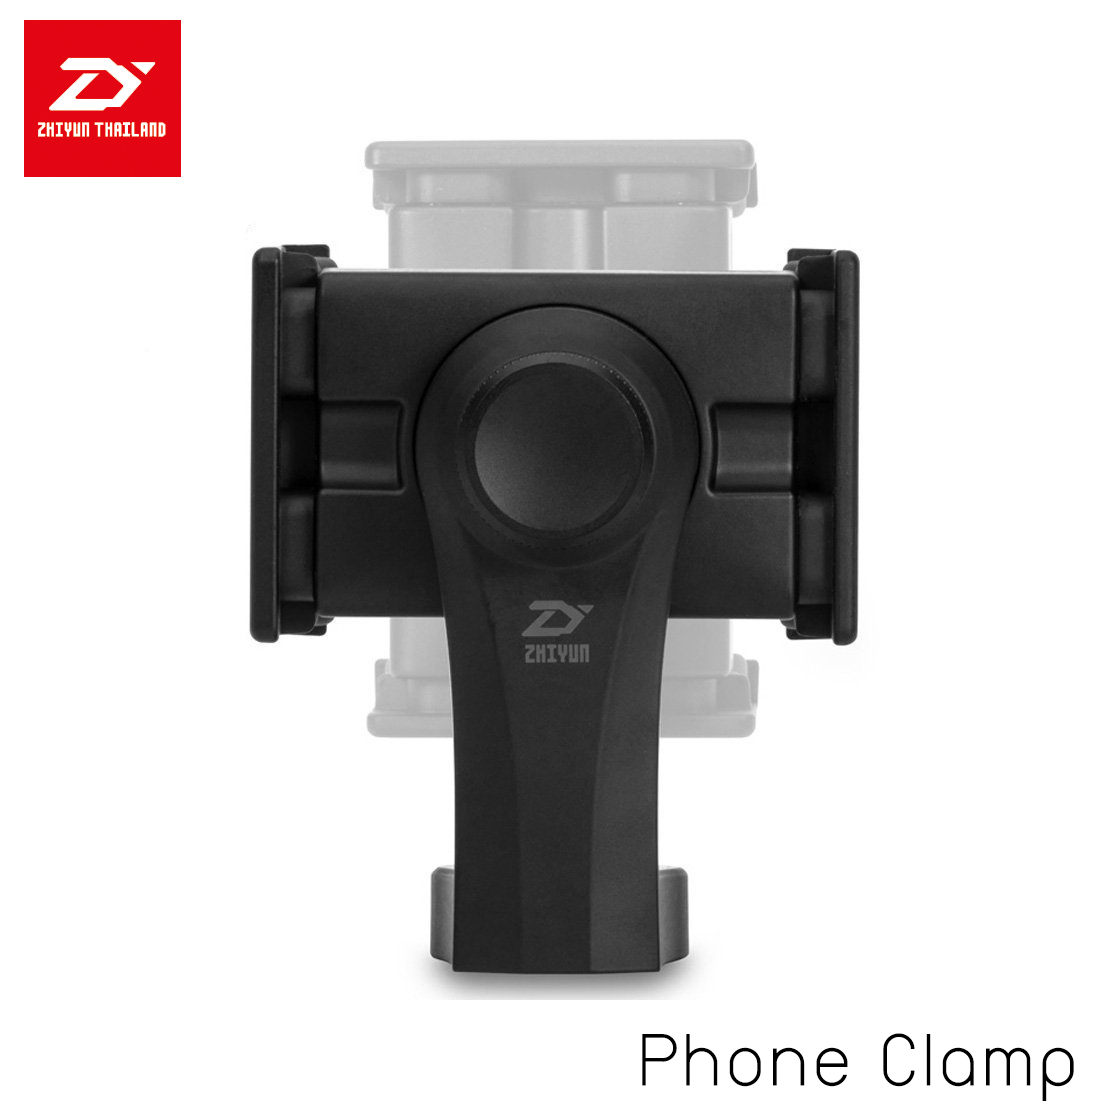 Zhiyun Phone Clamp